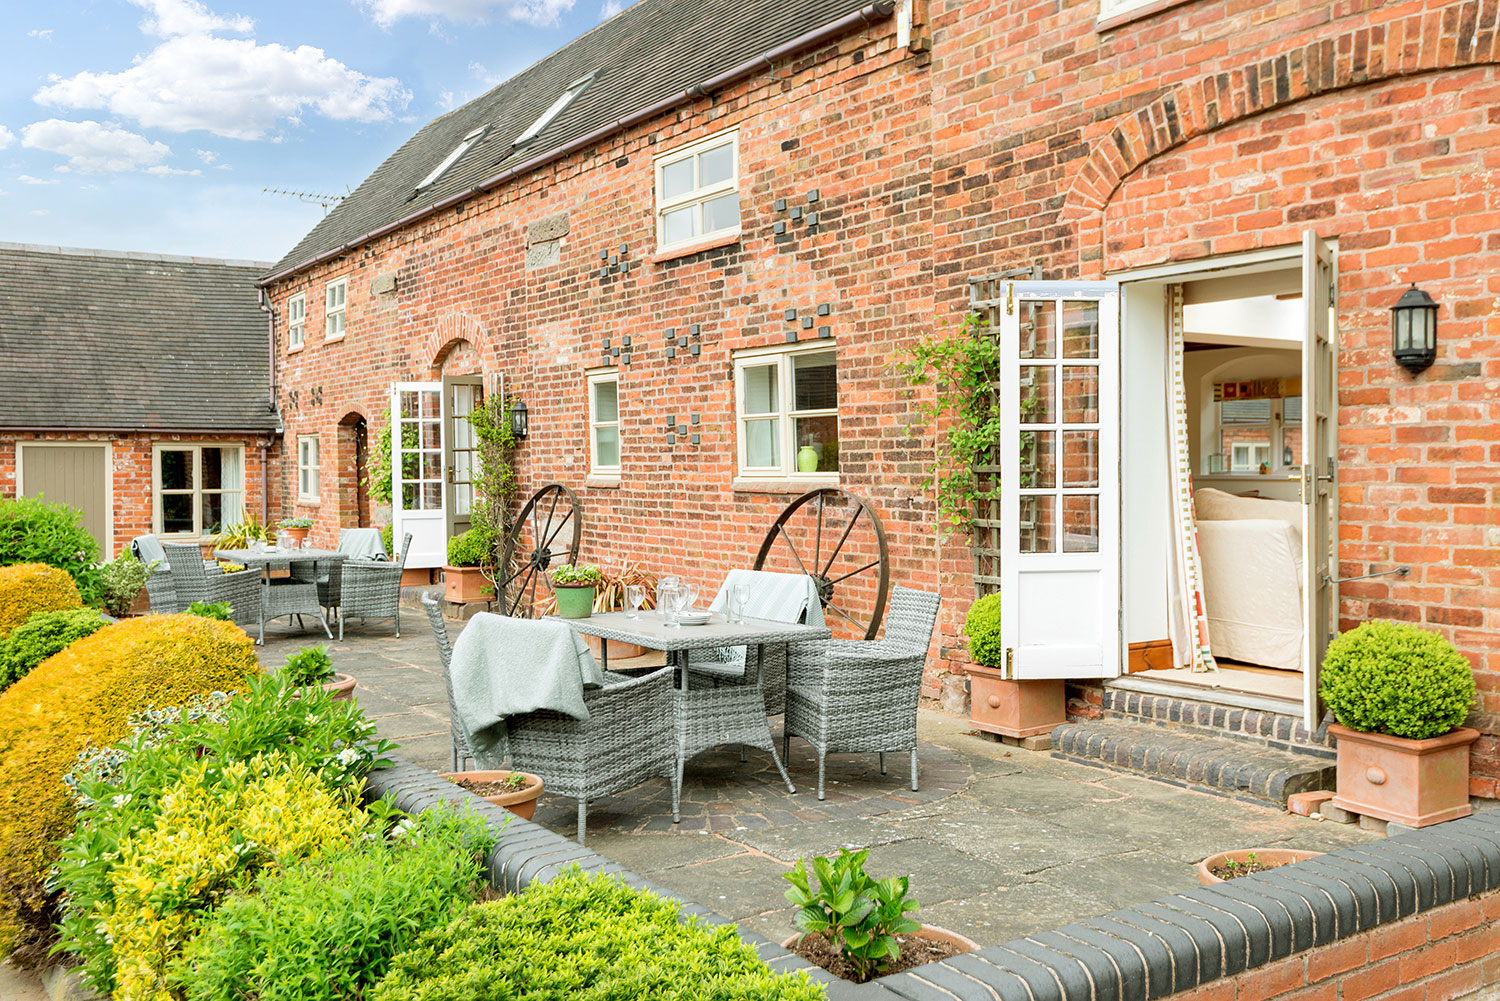 Relax on holiday in rural Leicestershire | Upper Rectory Farm Cottages